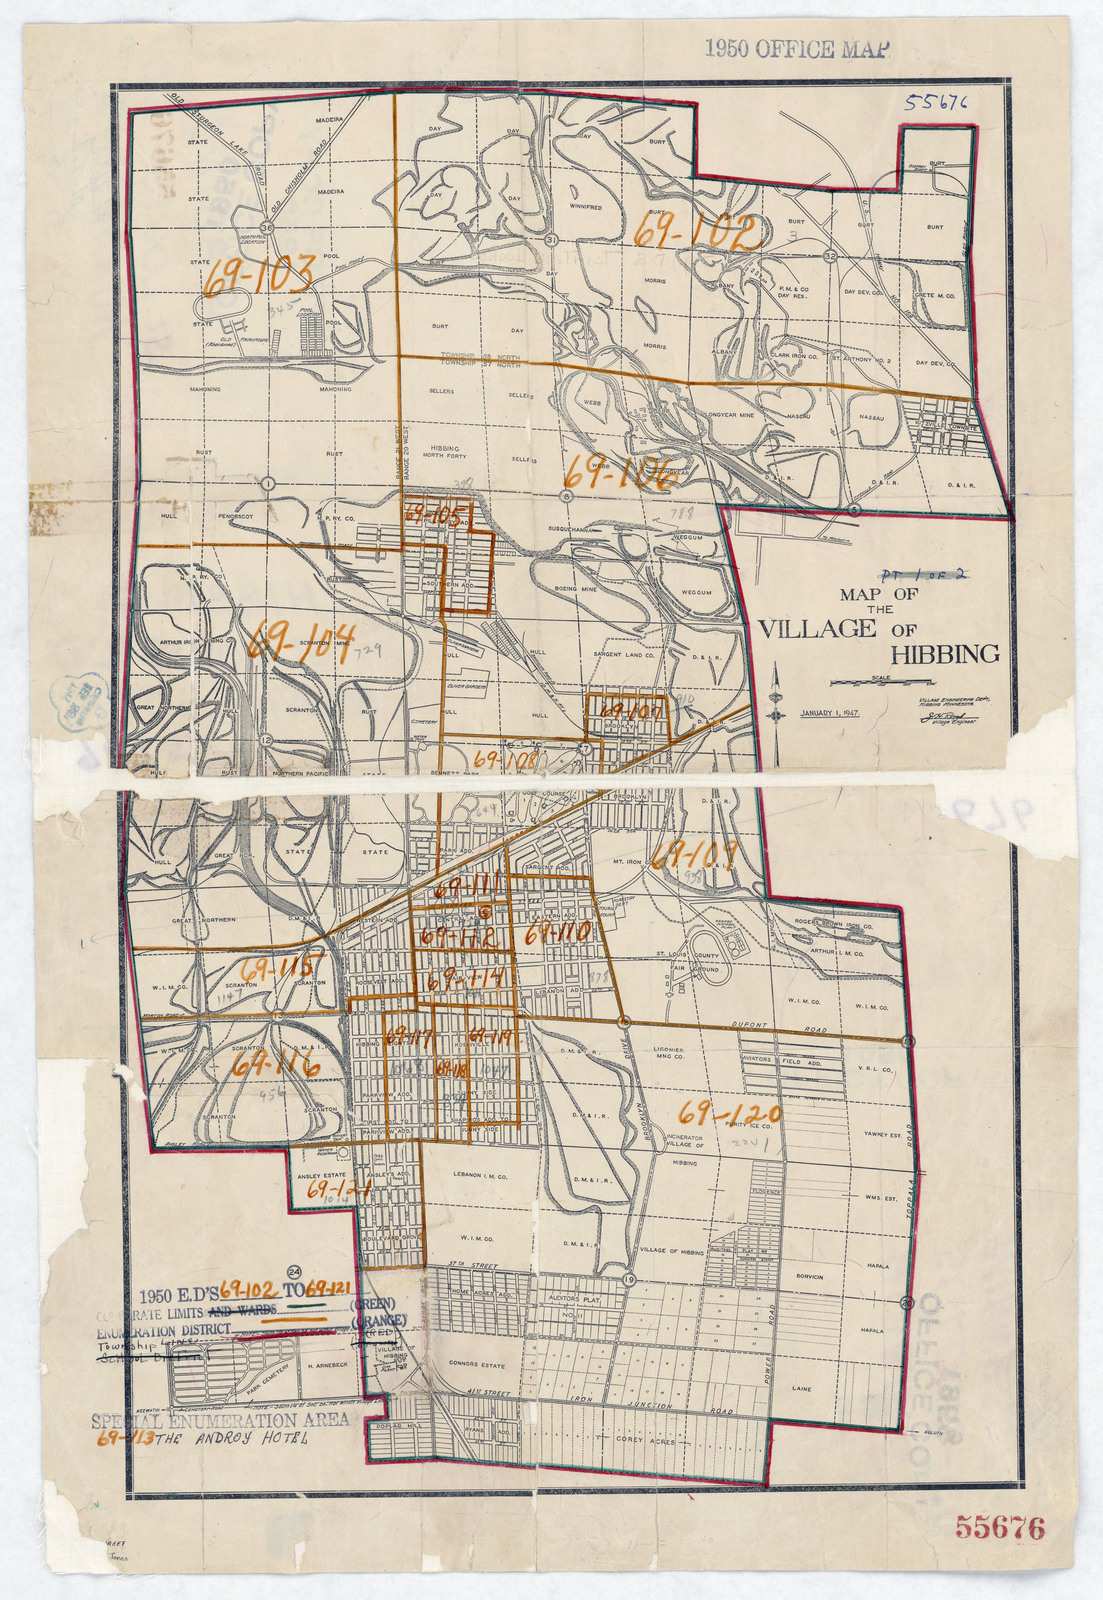 1950 Census Enumeration District Maps - Minnesota (MN) - St. Louis ...